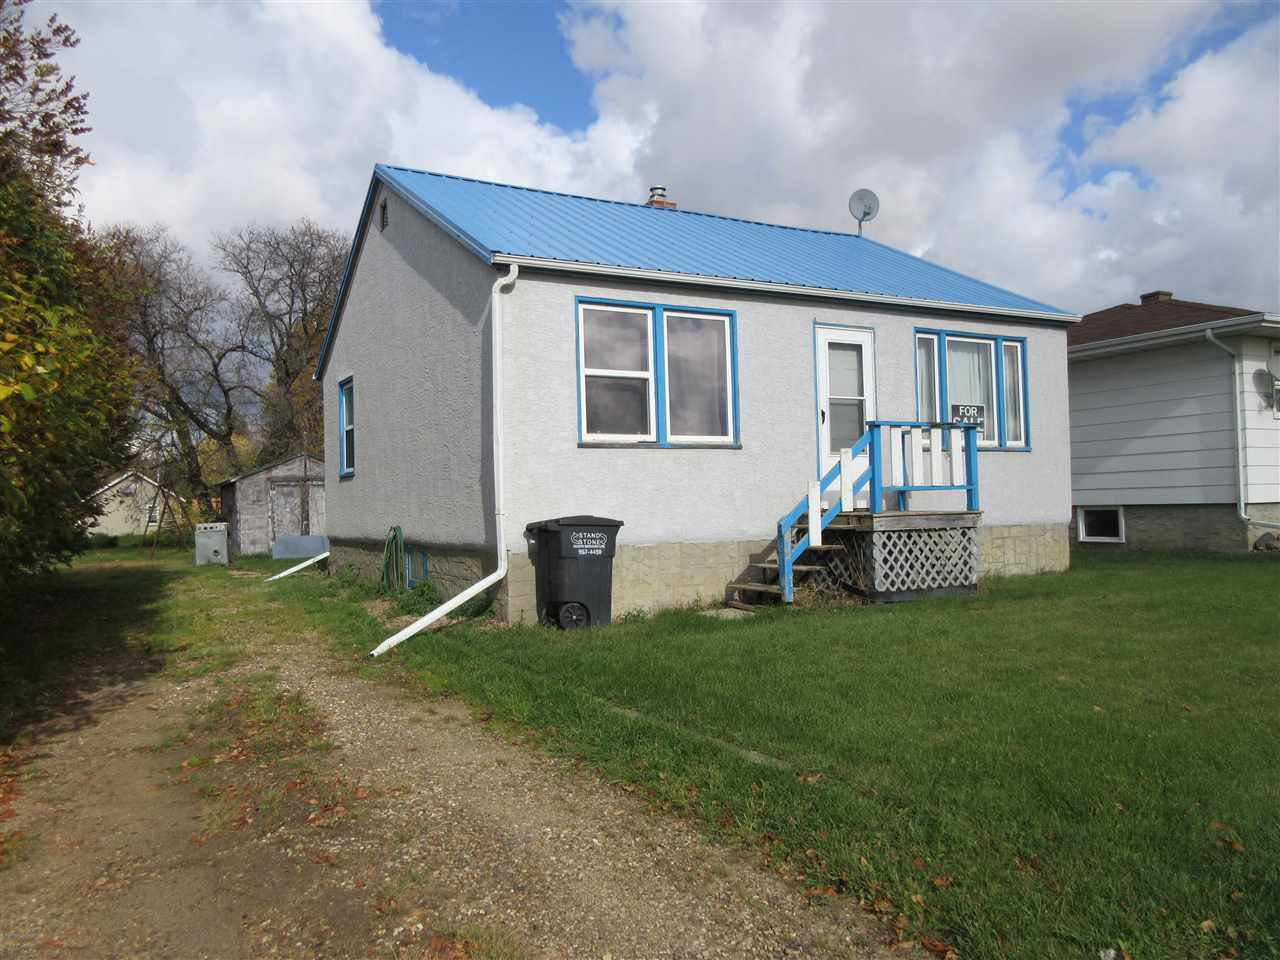 Main Photo: 214 3 Avenue: Thorhild House for sale : MLS®# E4175390